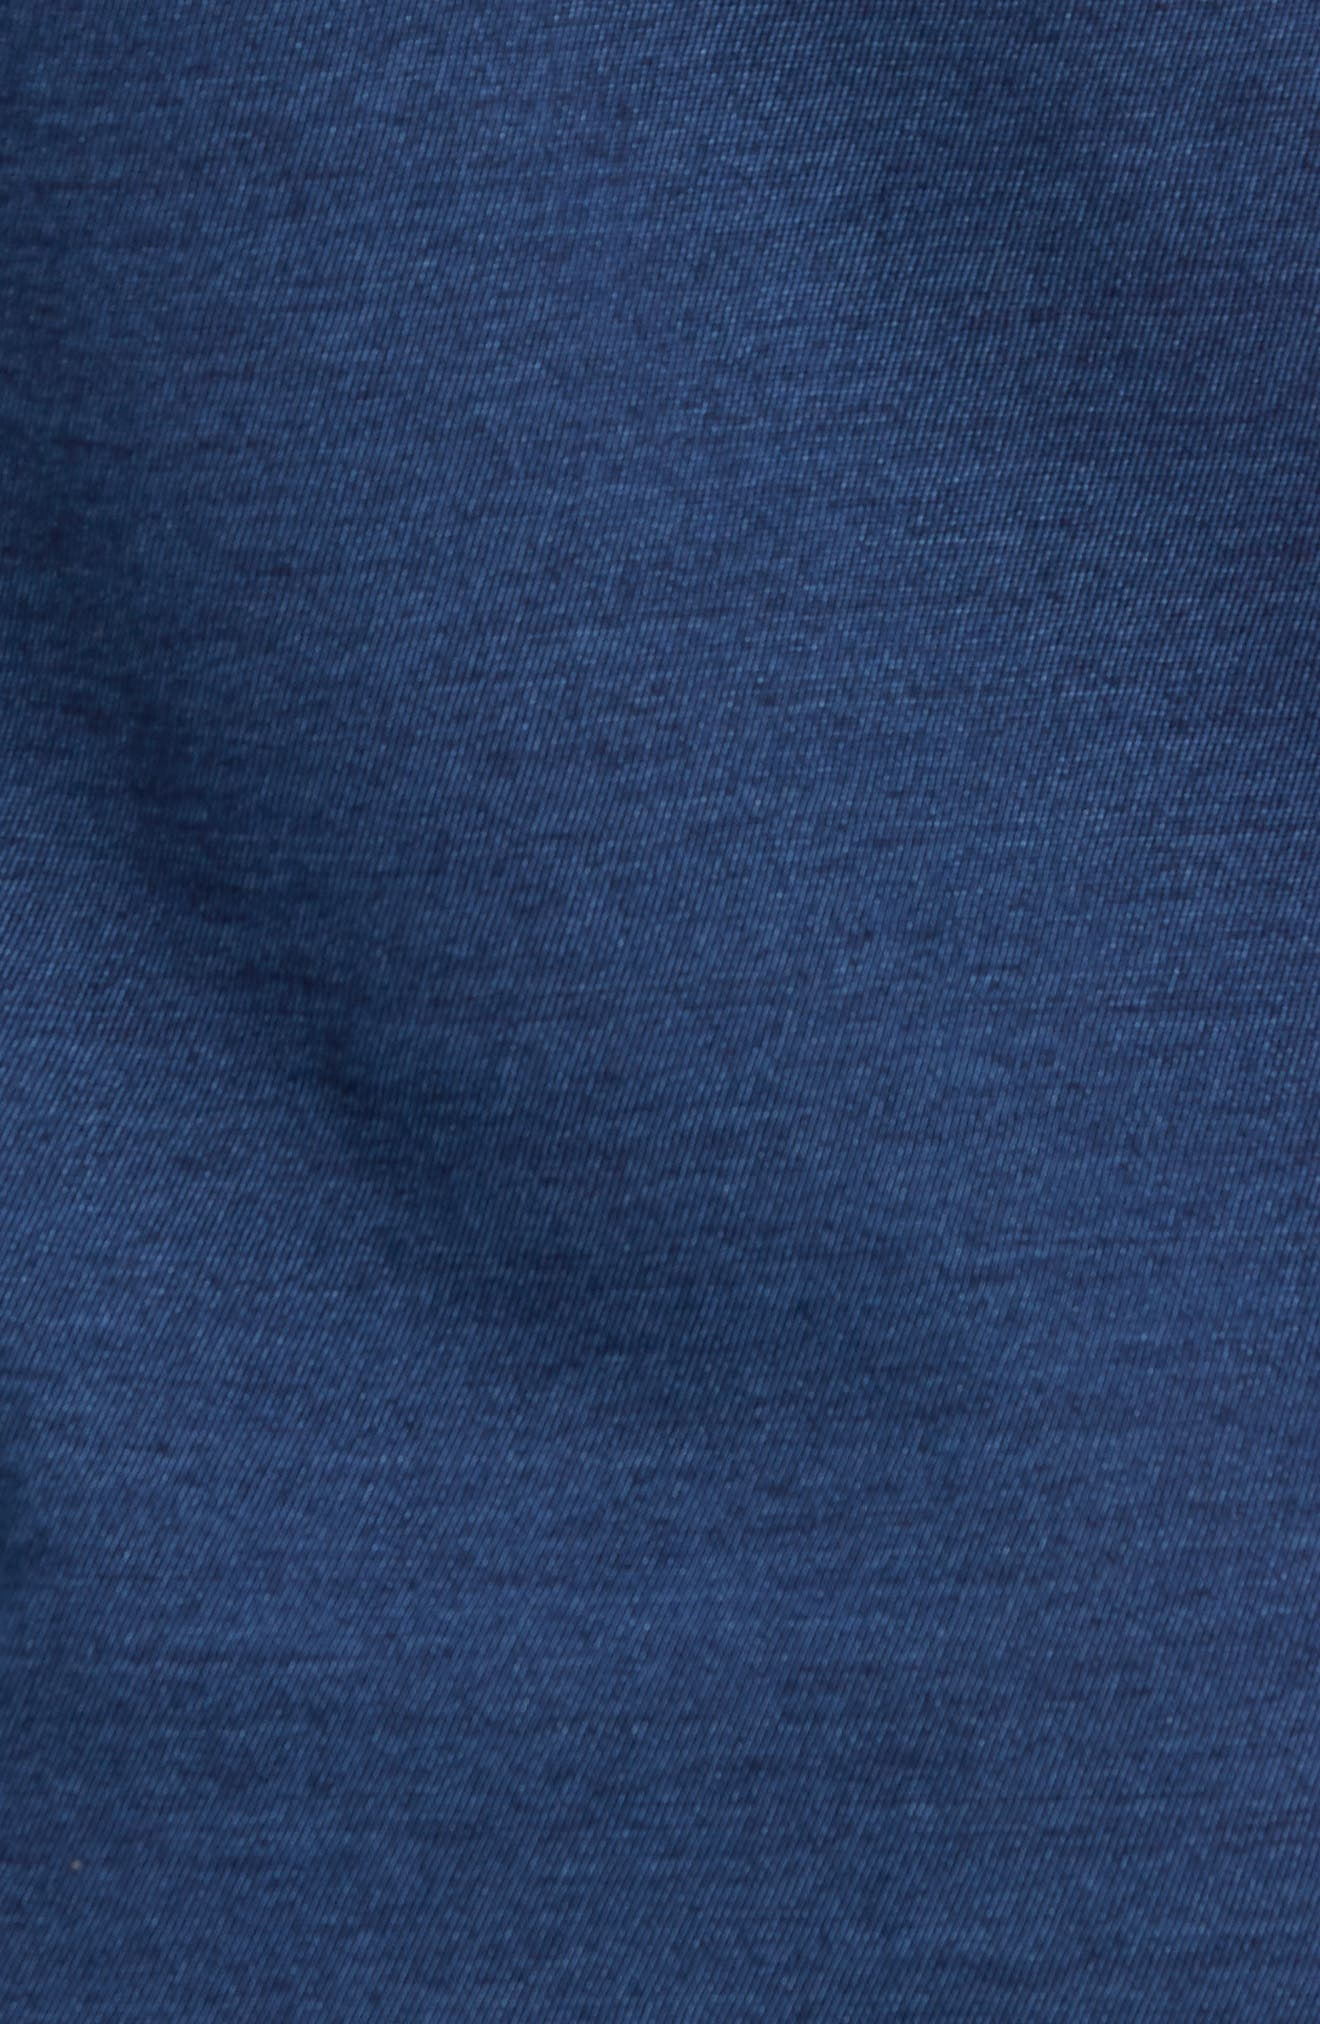 Engineered Indigo Stripe T-Shirt,                             Alternate thumbnail 5, color,                             420